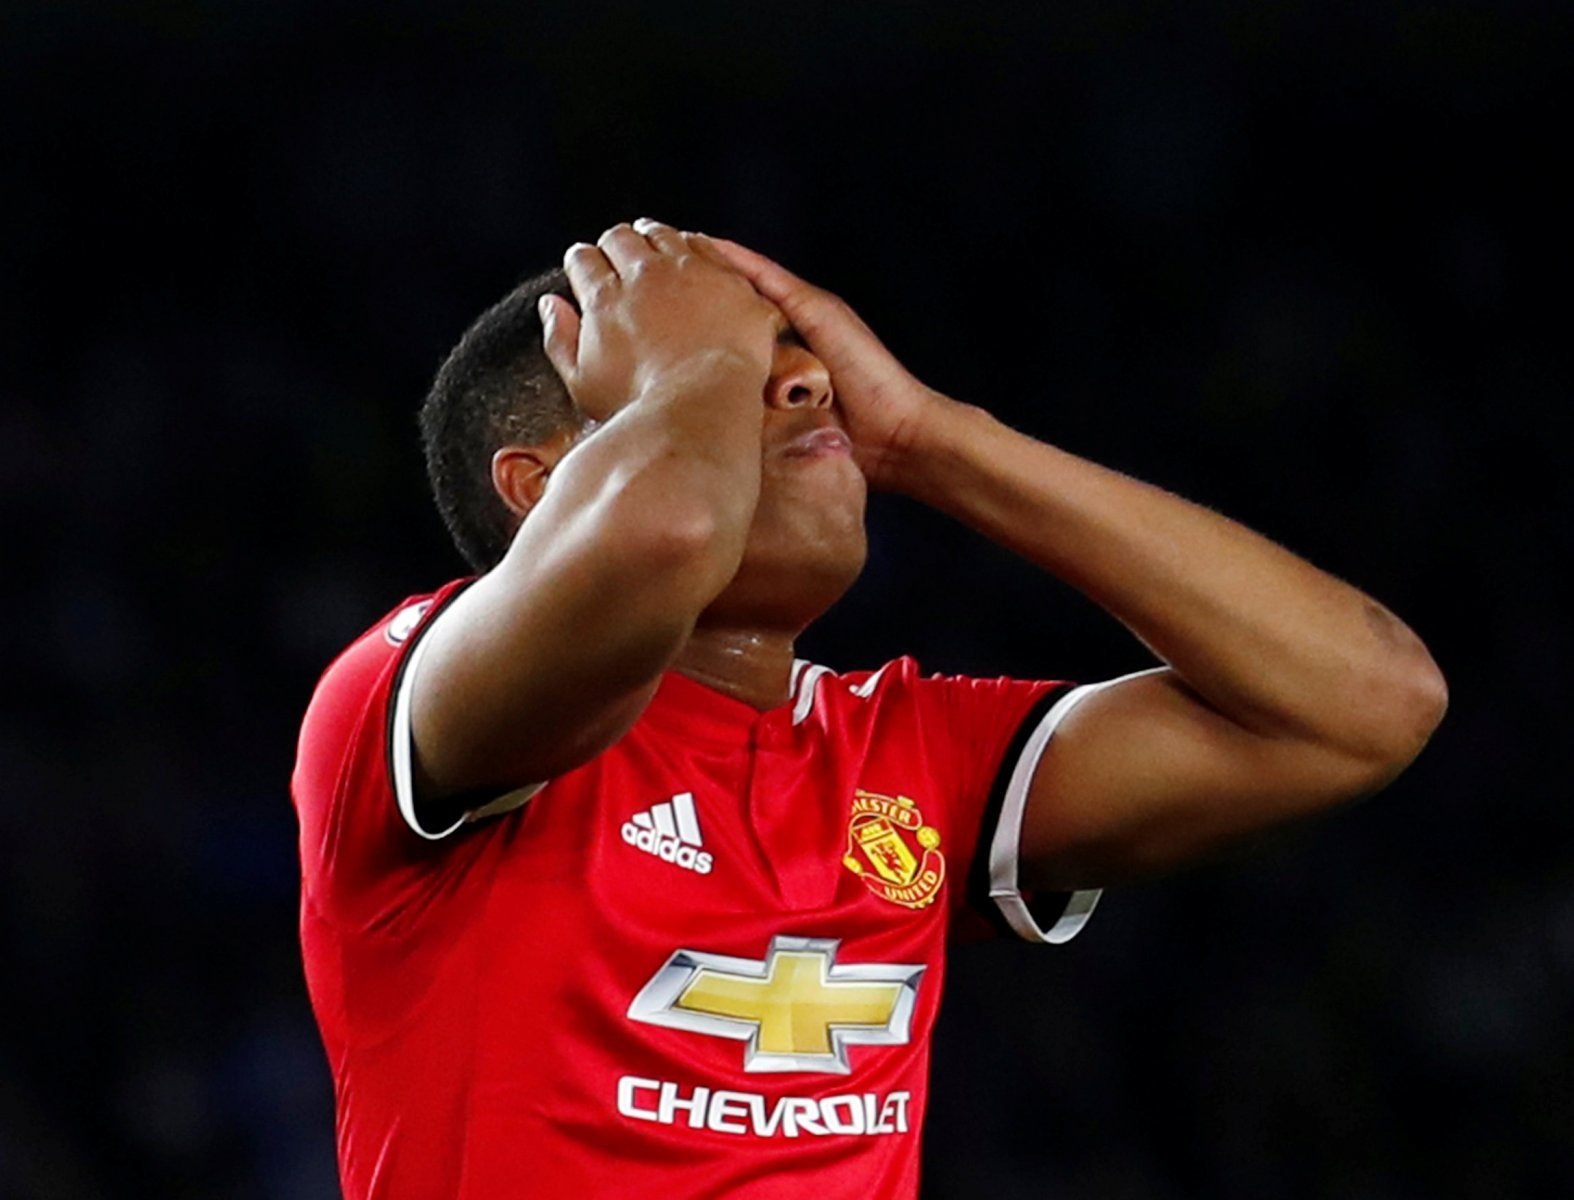 Man Utd fans are loving seeing Anthony Martial in training